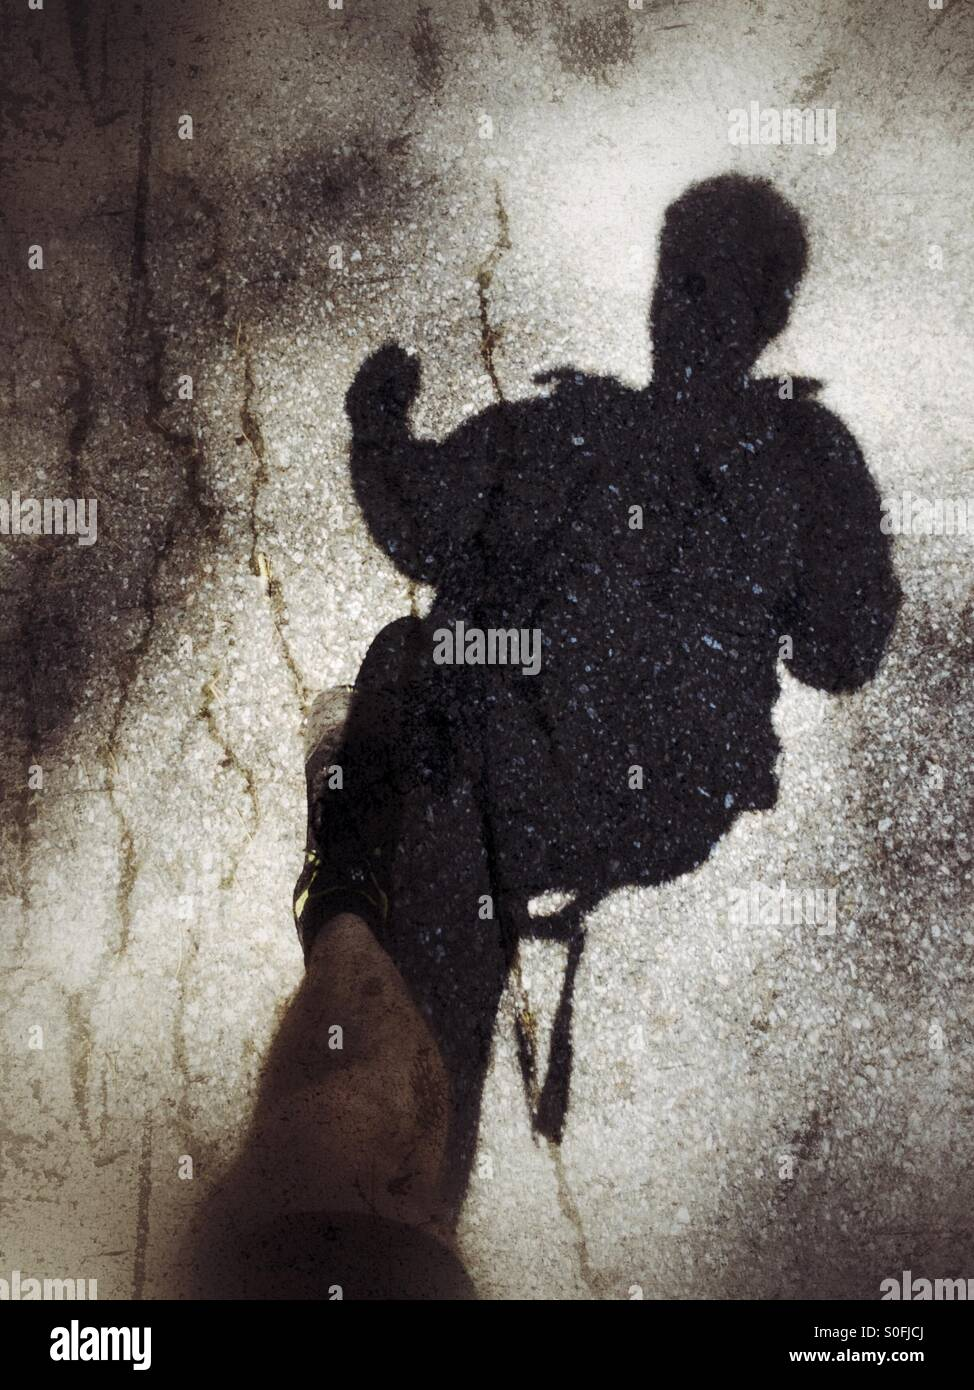 Running shadow. Stock Photo